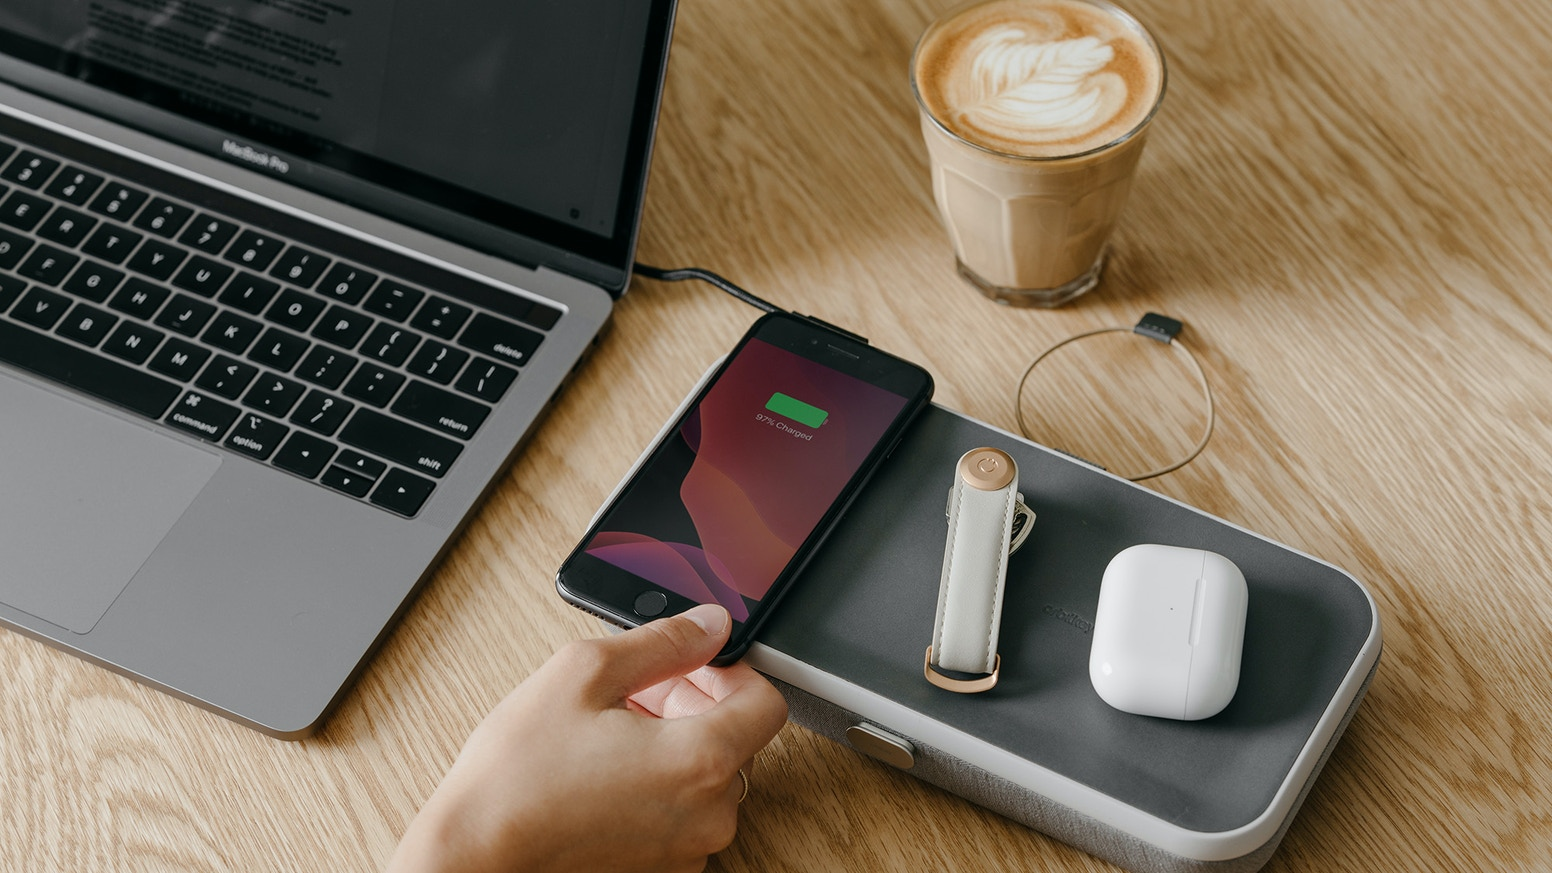 The portable and customisable desk organiser with an in-built wireless charger.